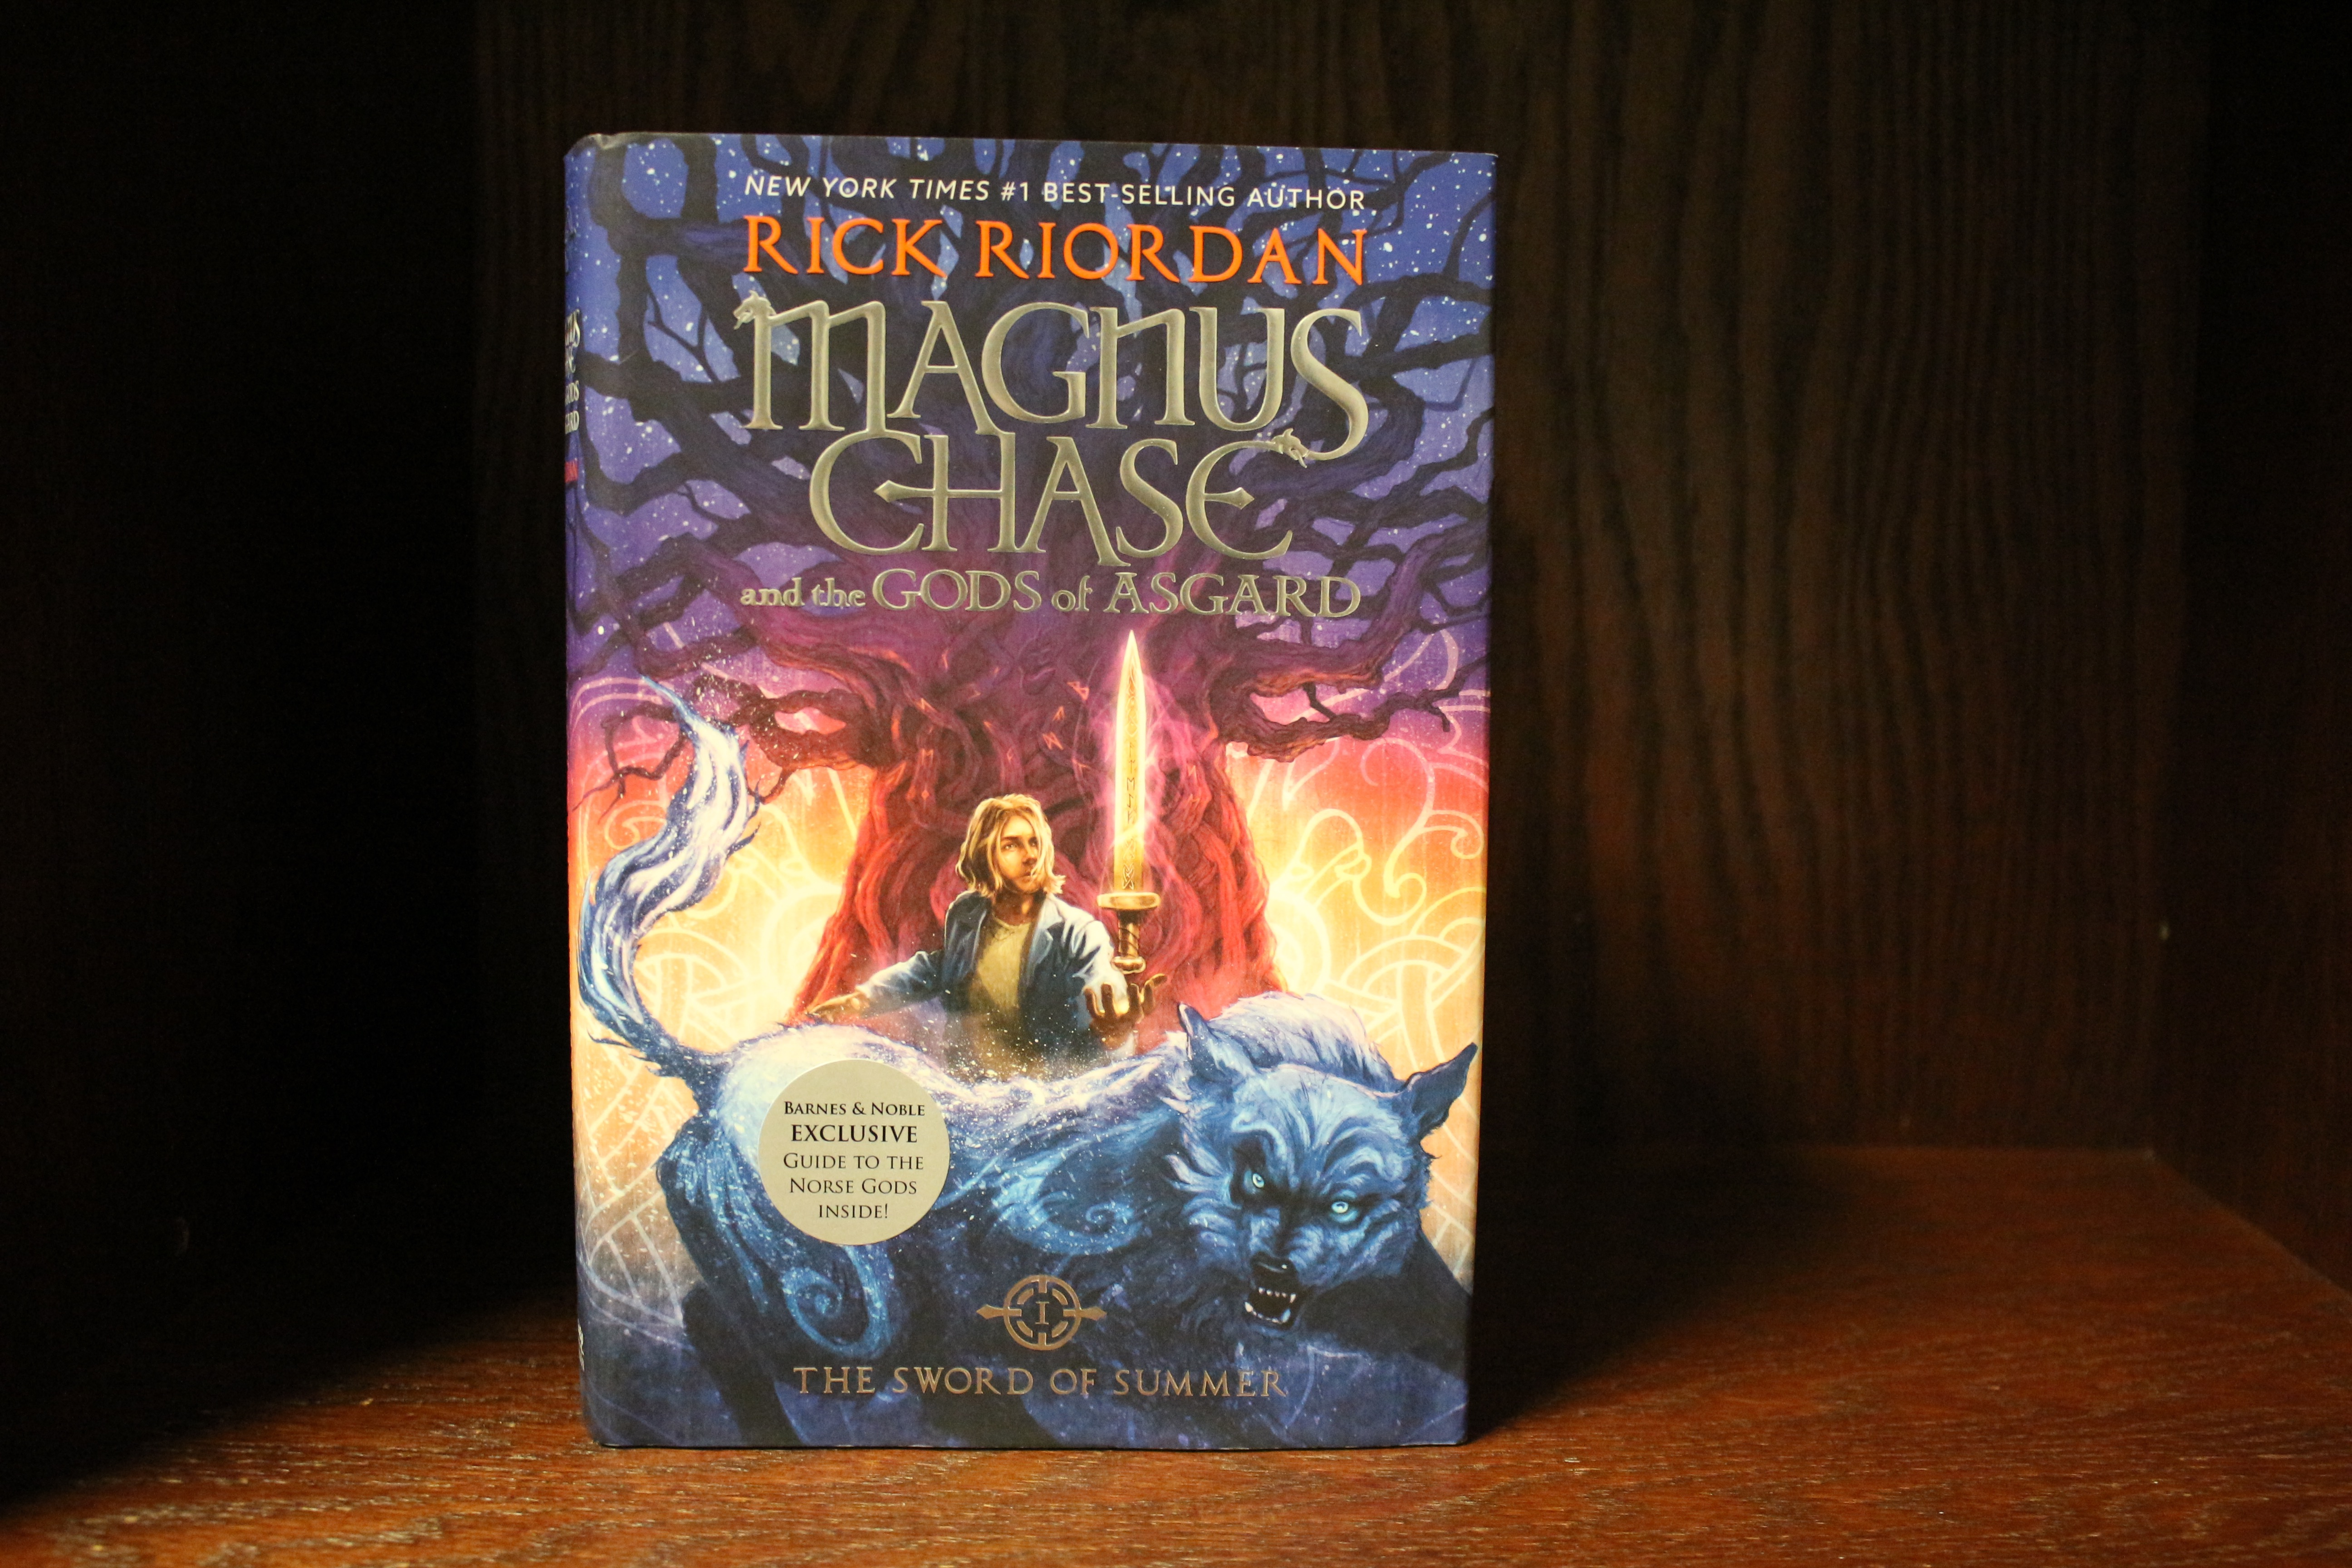 Front facing photo of Magnus Chase and the God of Asgard book